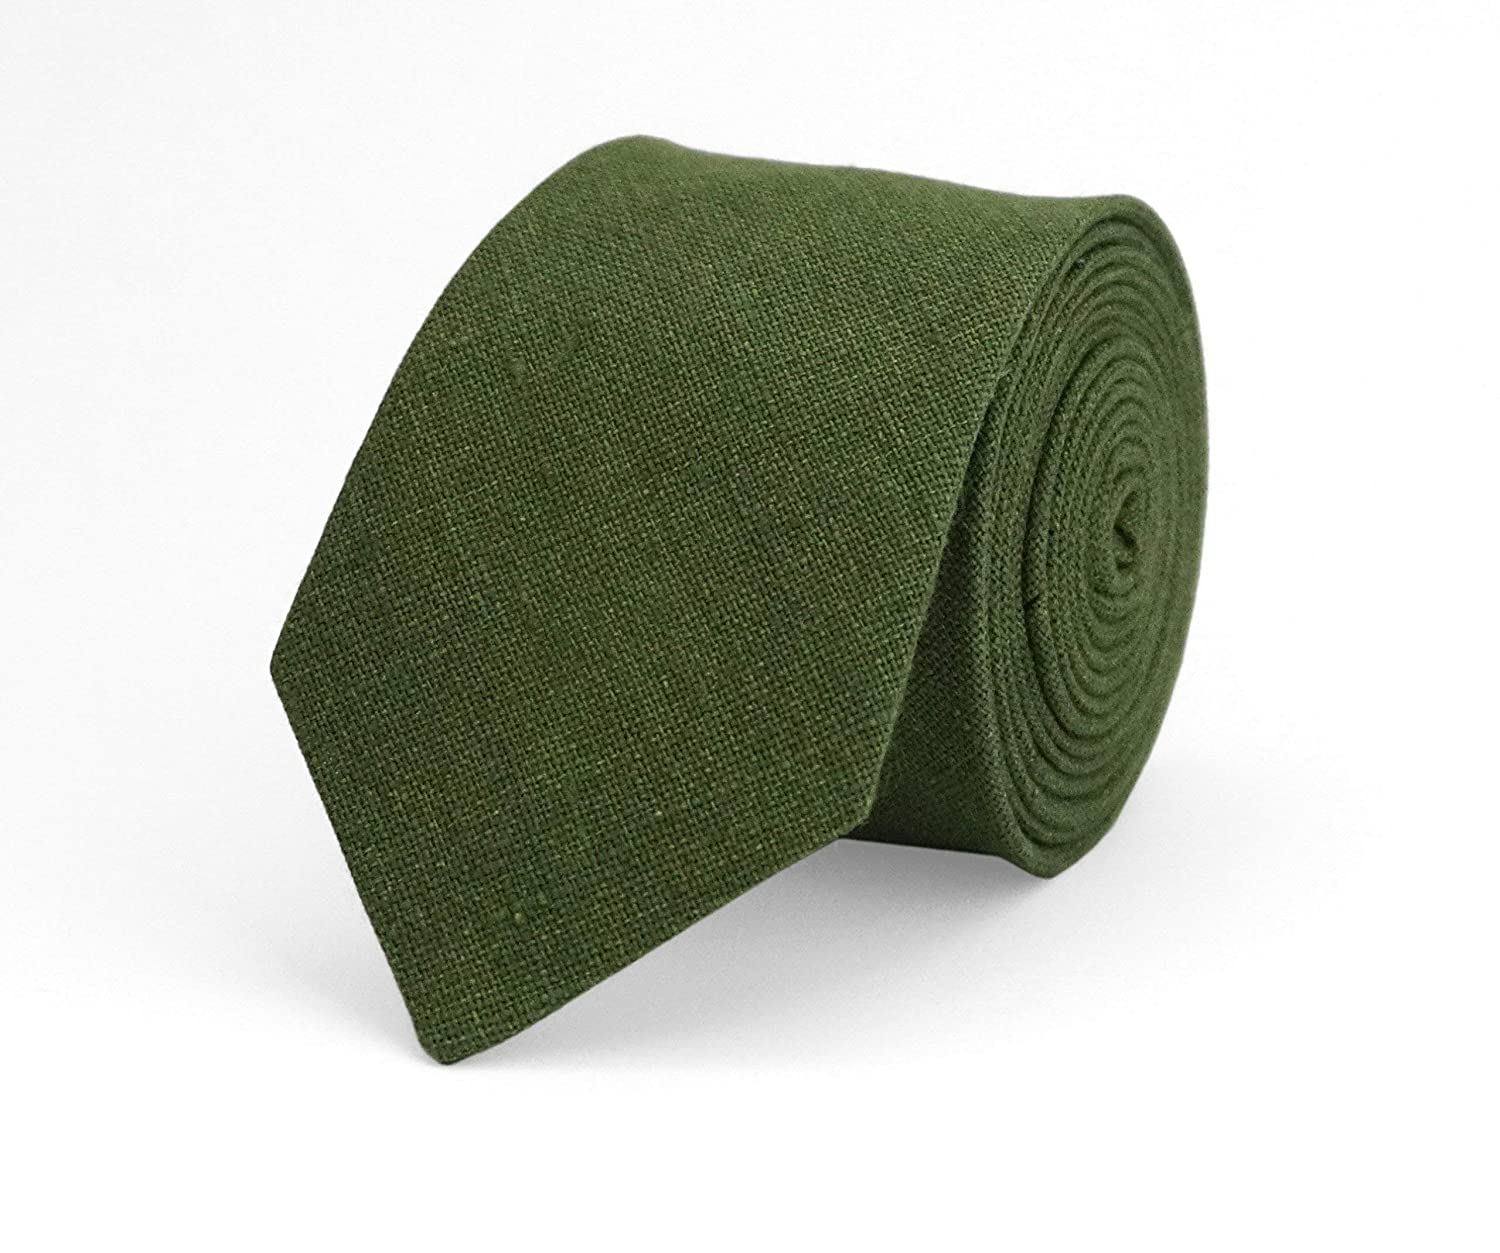 Moss green linen wedding necktie for groomsmen and groom//moss green bow ties for men and kids available with matching pocket square//stocking stuffer//moss green toddler boys bow ties